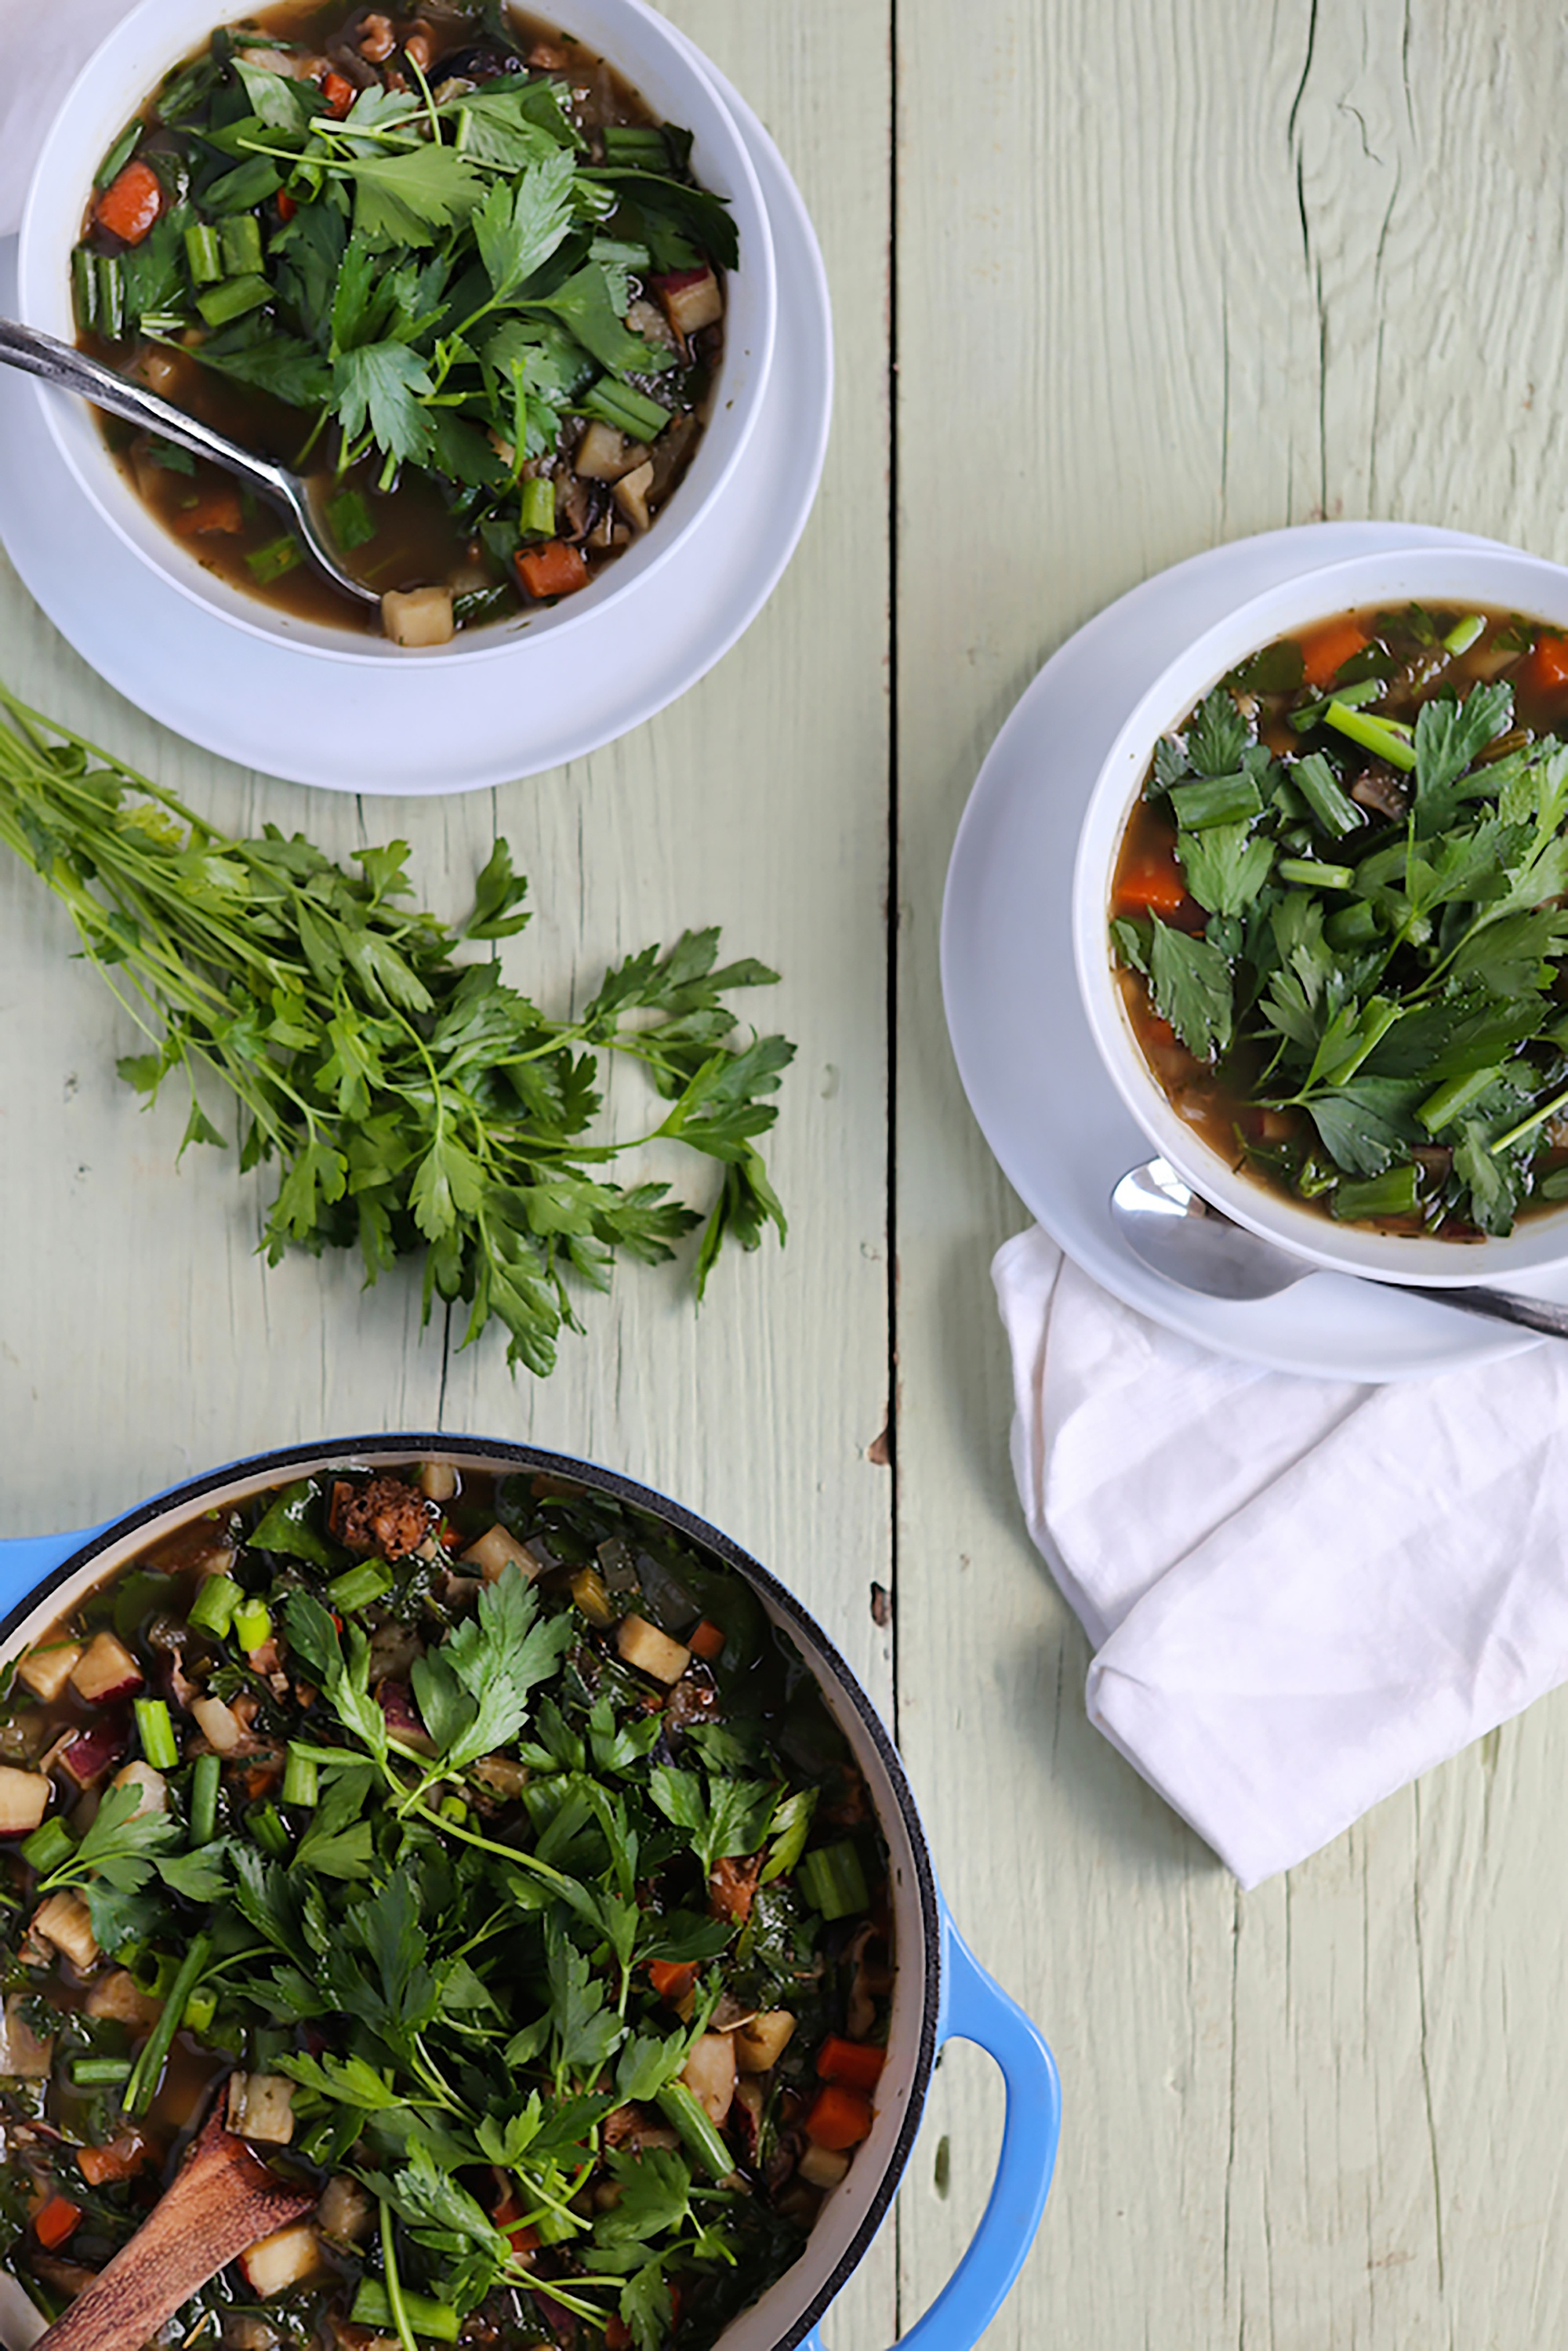 Bowls filled with mushroom tonic soup and topped with cilantro